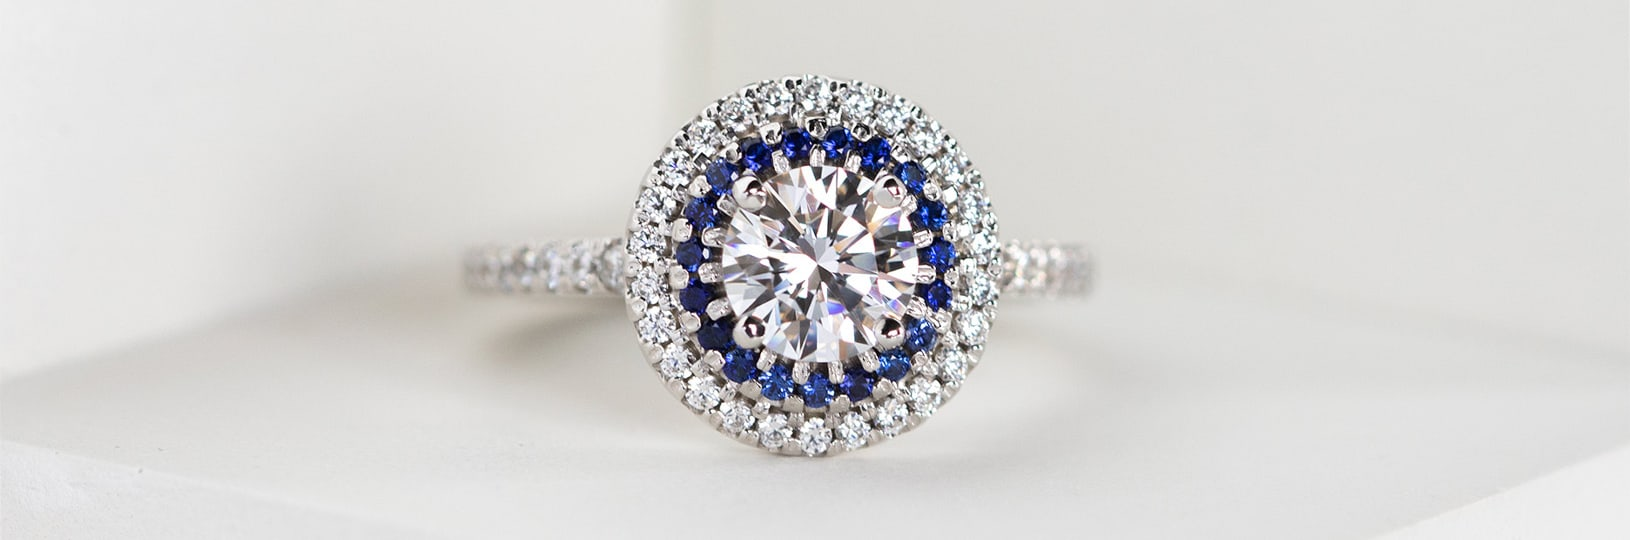 Halo sapphire engagement ring.